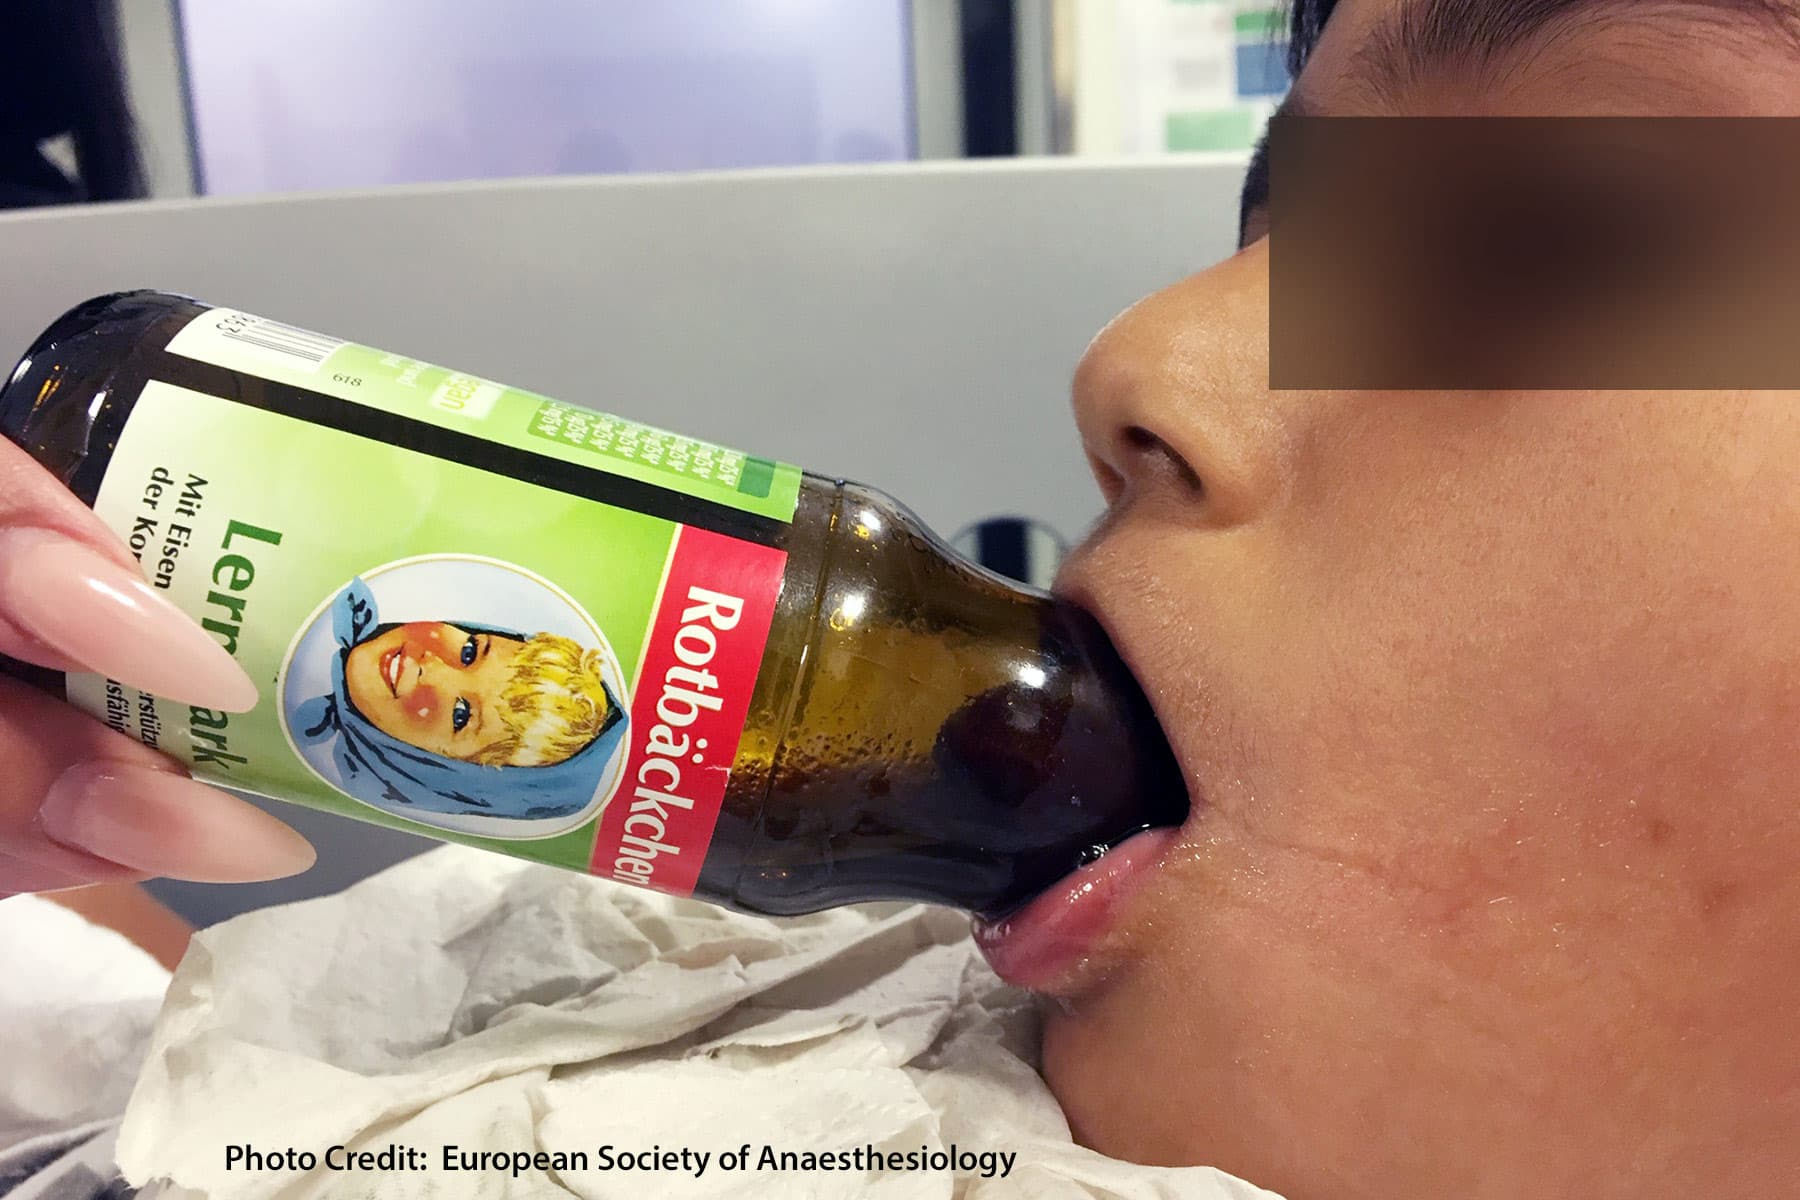 boy with tongue stuck in bottle